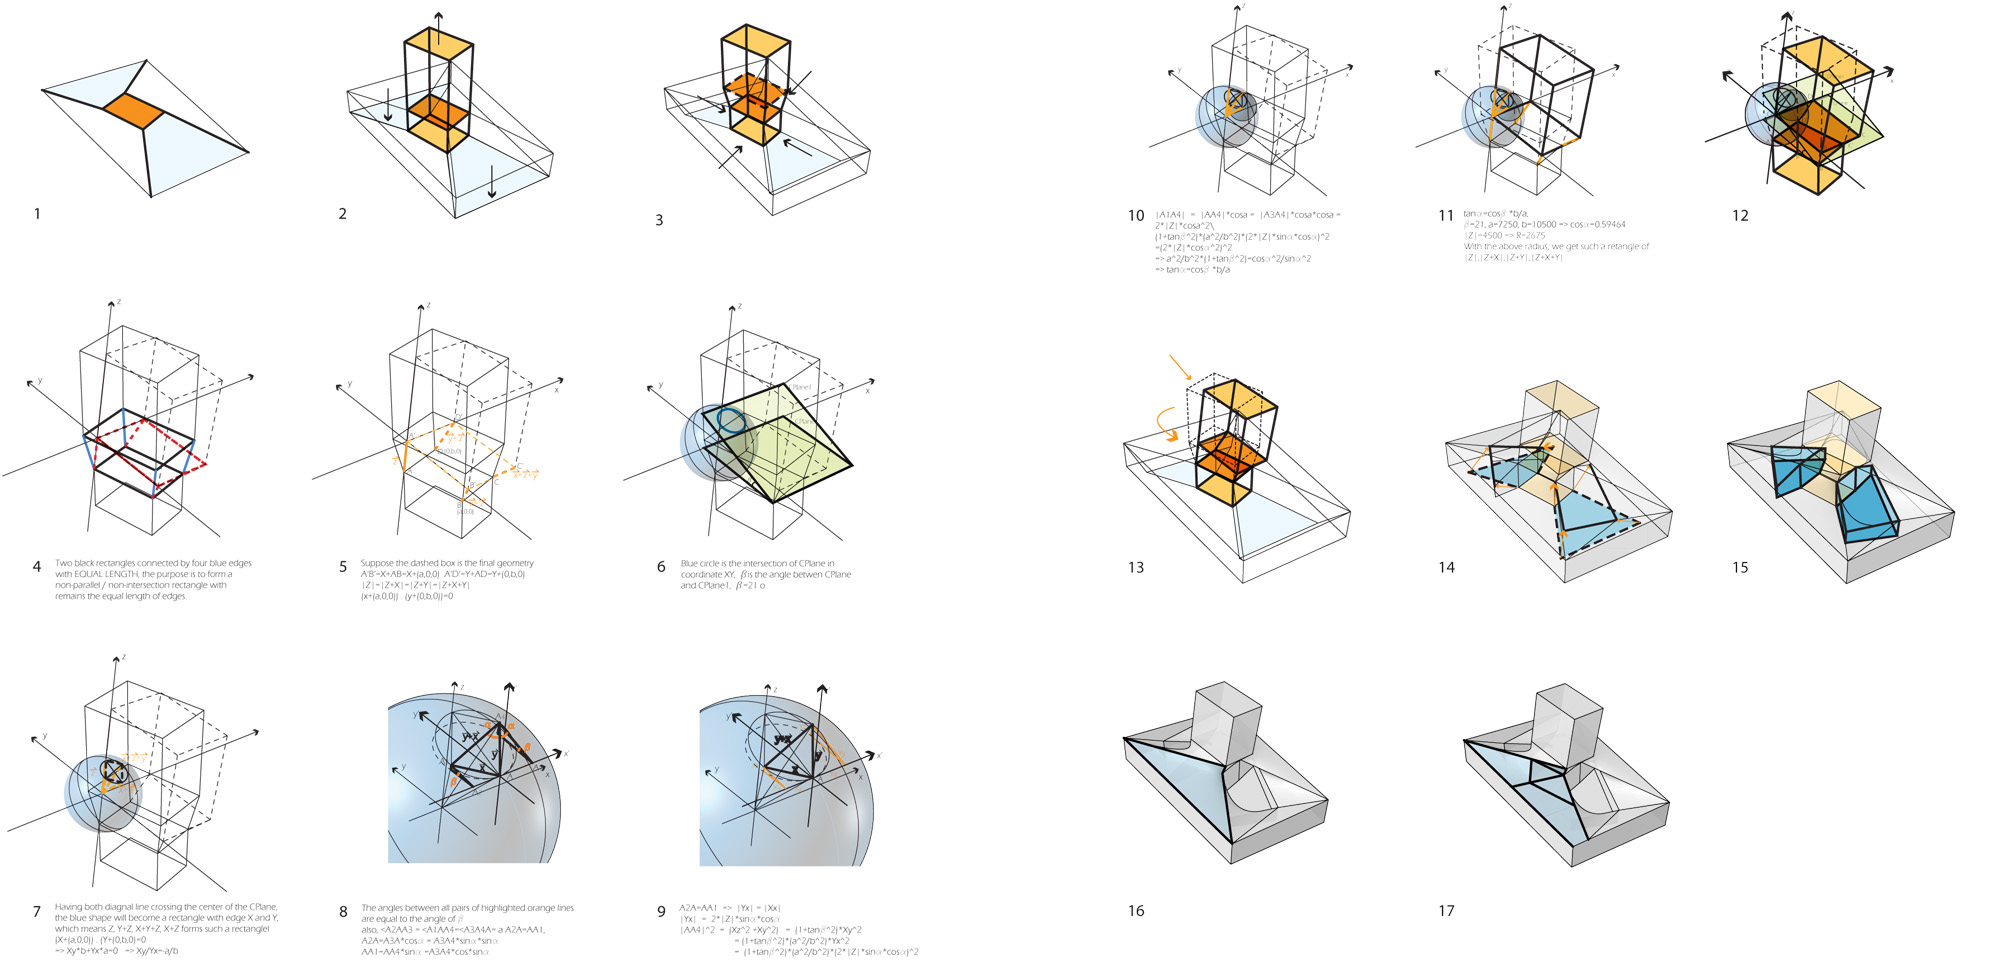 Hd wallpapers oma diagrams gcpatternpatterne get free high quality hd wallpapers oma diagrams pooptronica Choice Image